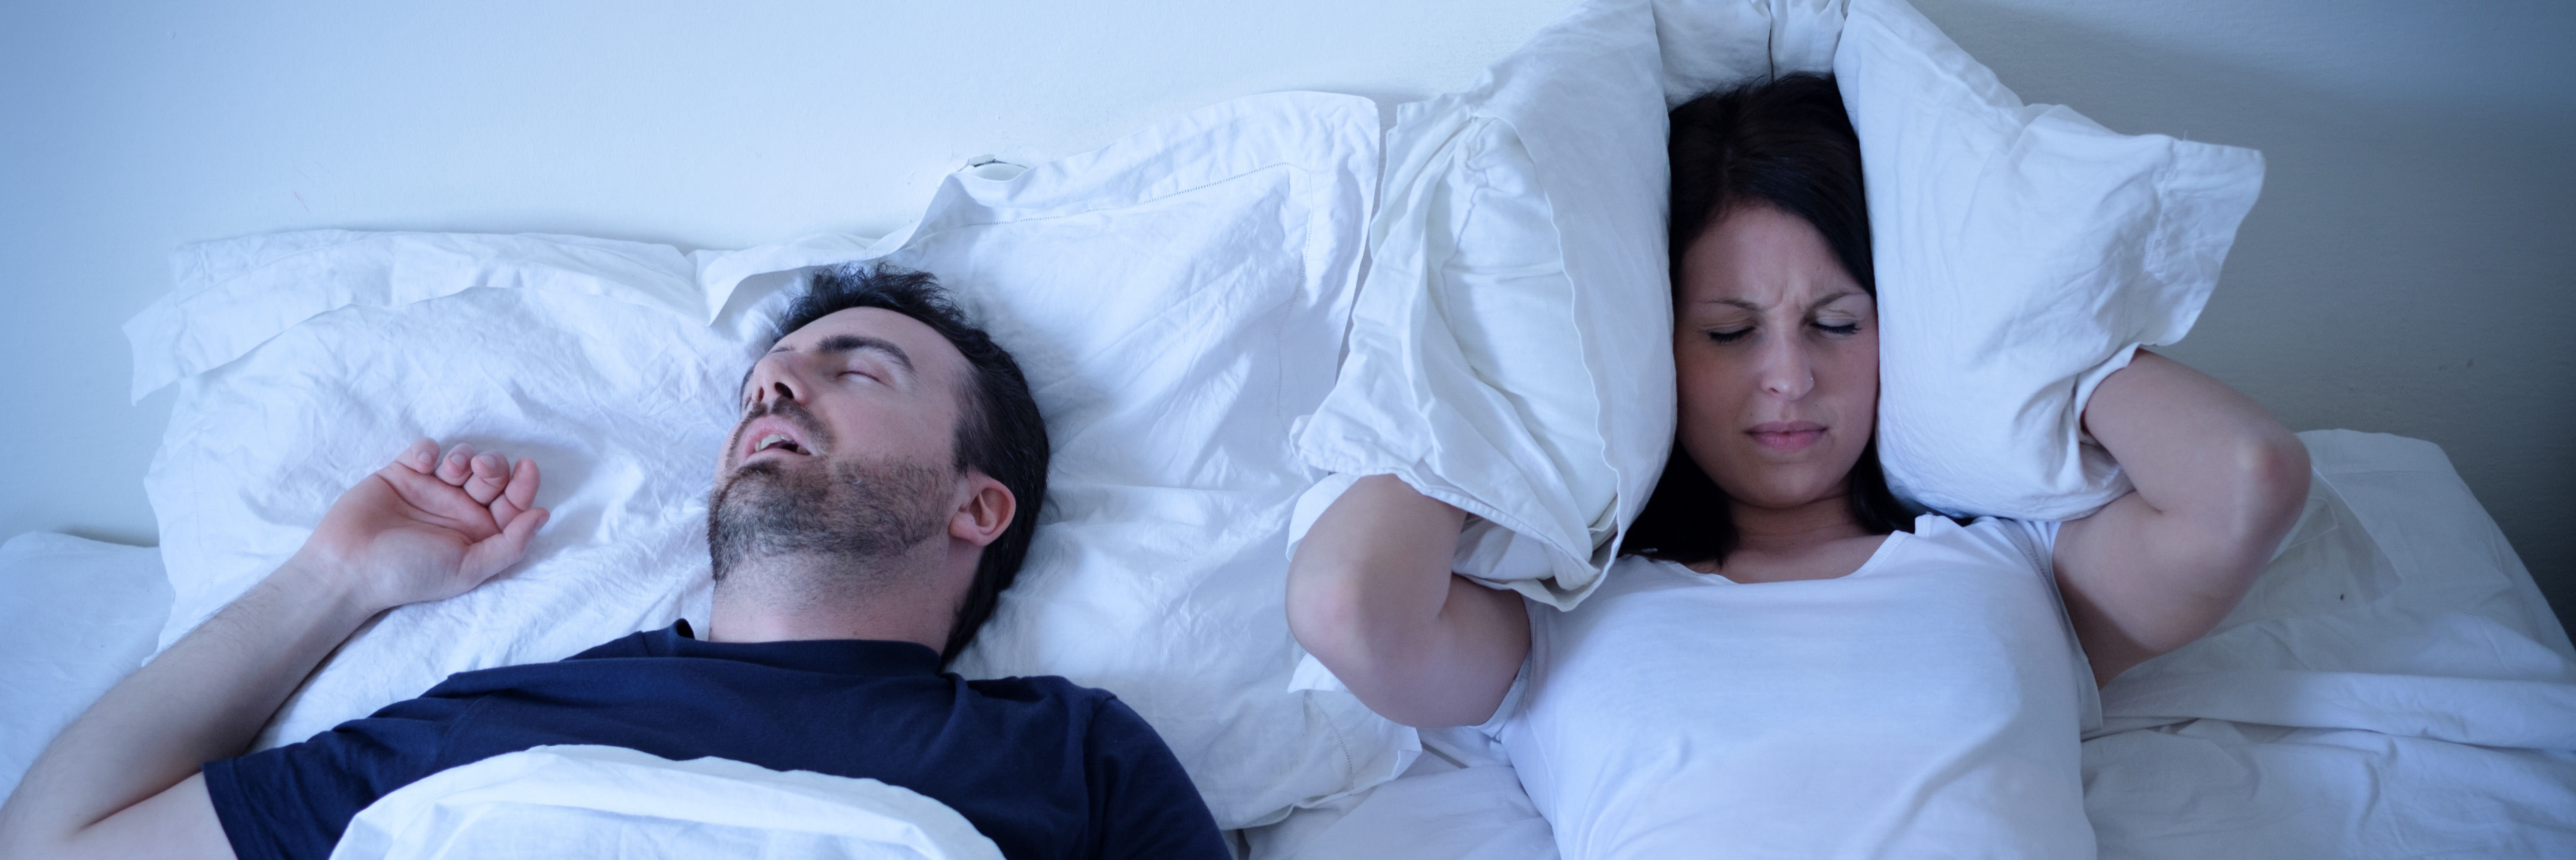 Couple in bed while wife struggles to sleep